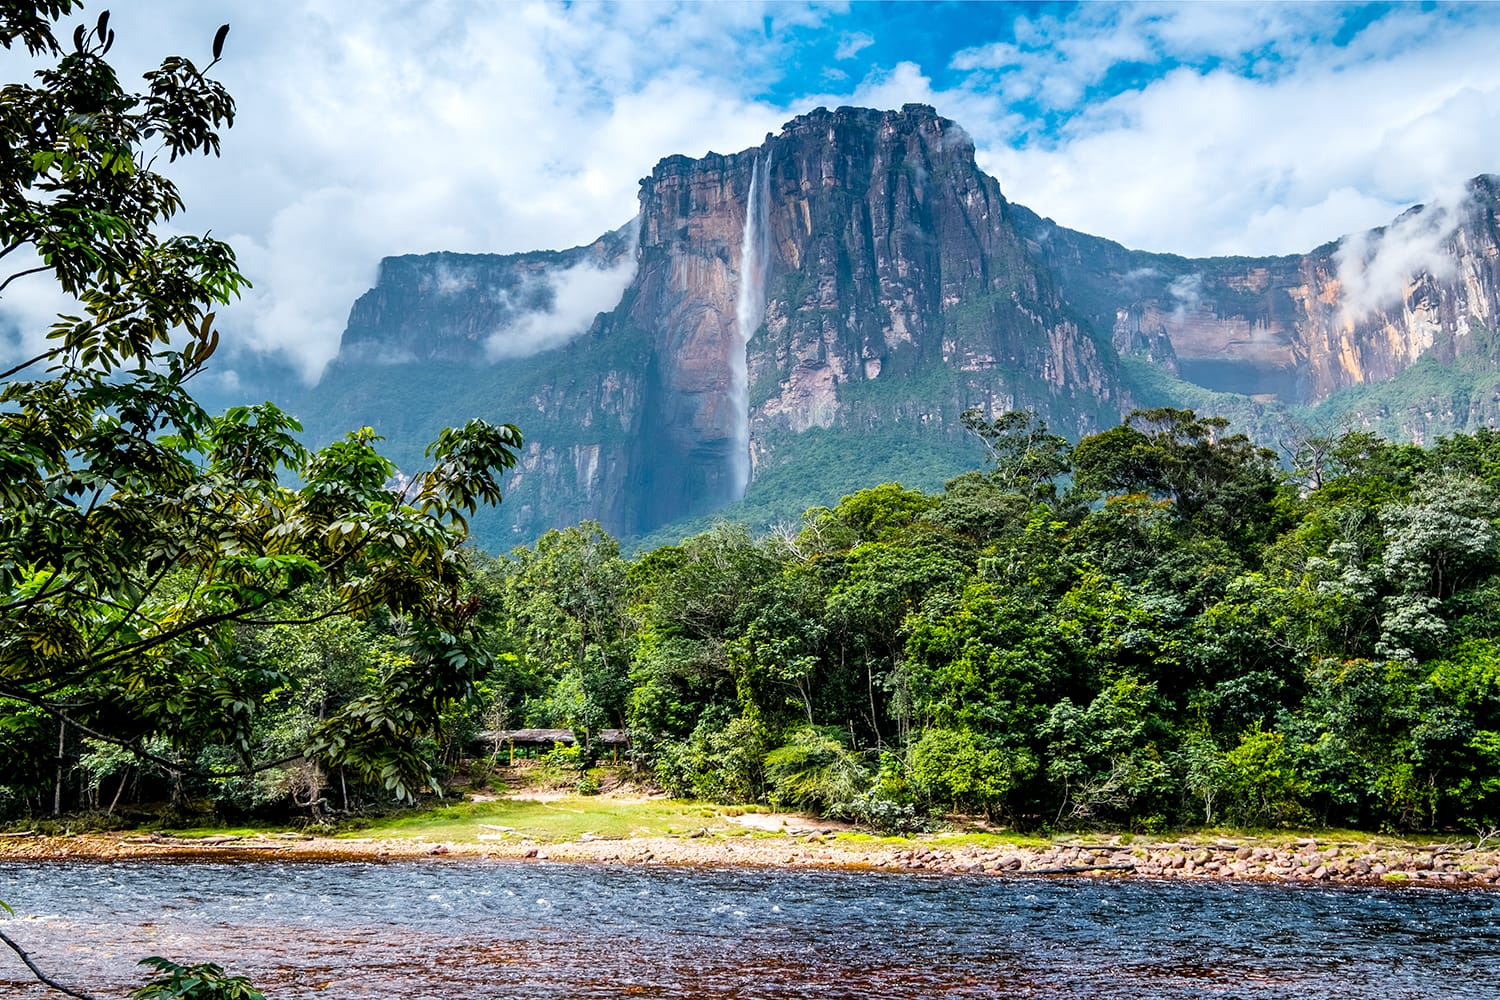 Angel Falls from afar, Colors of Canaima National Park, Venezuela